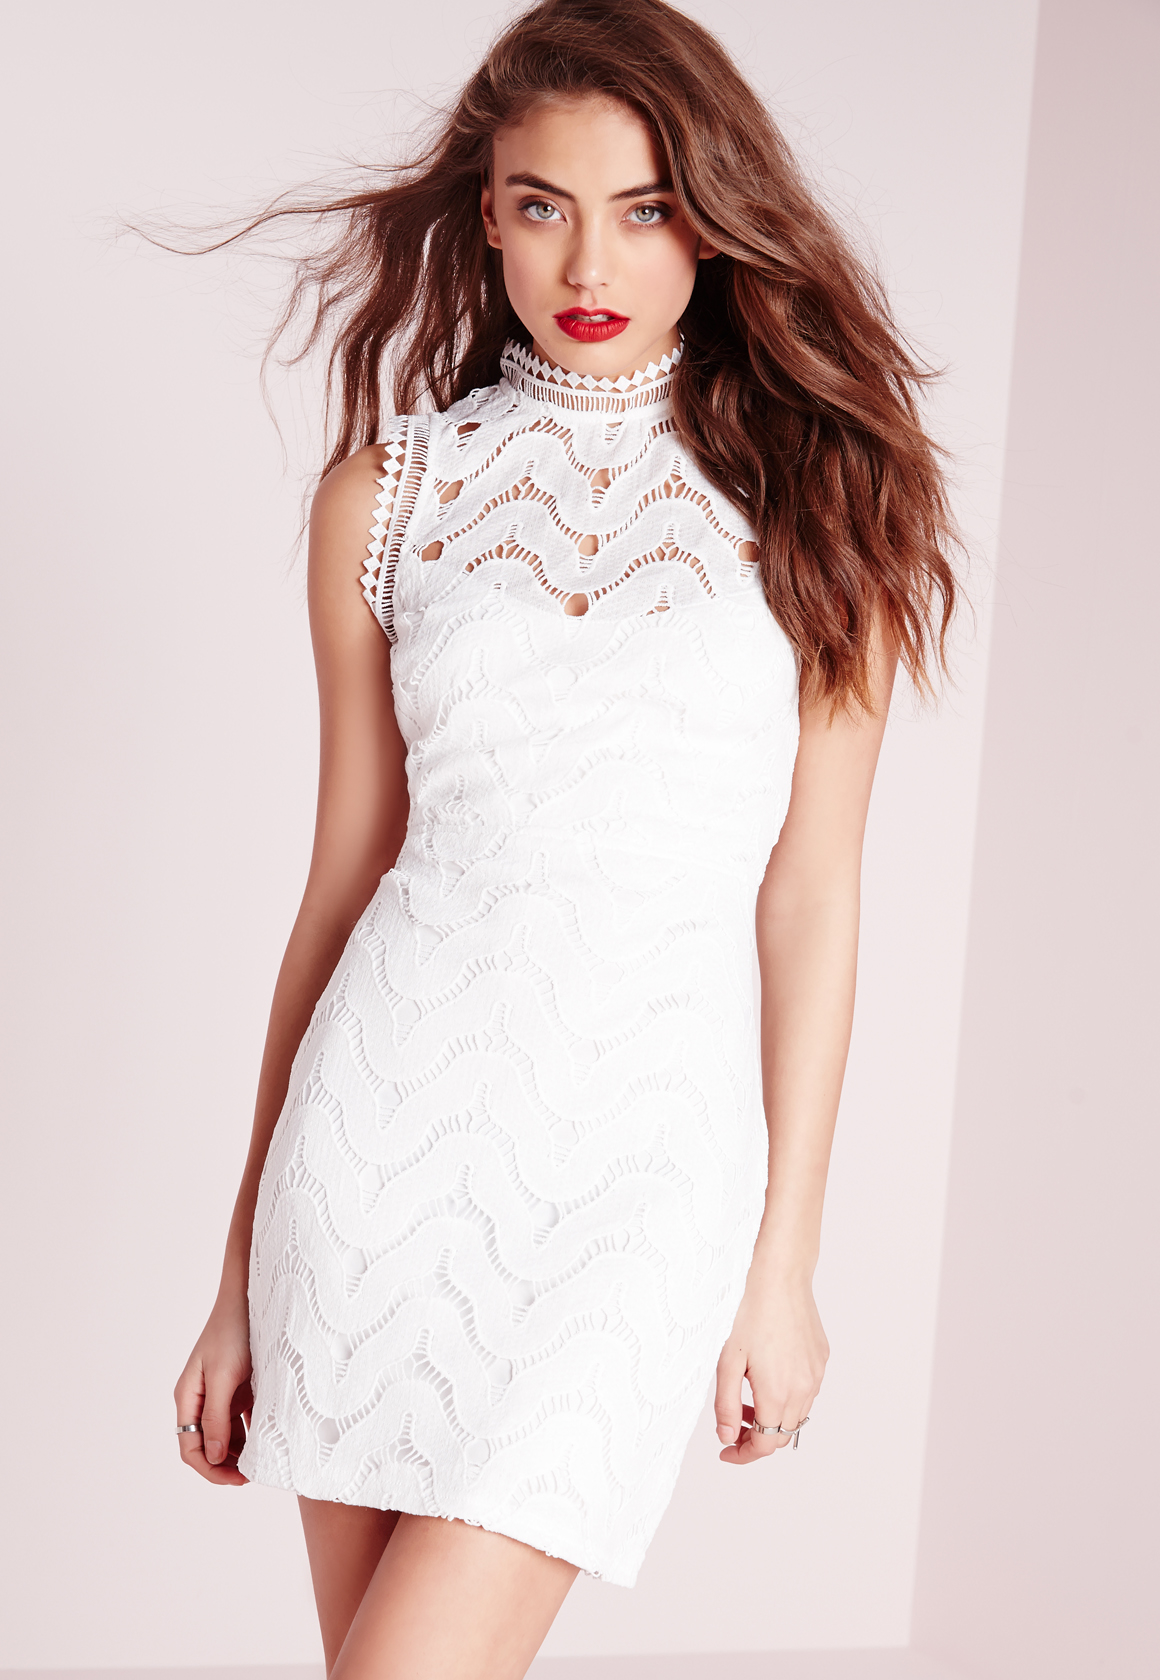 b29c49144be5 Lyst - Missguided Lace Back High Neck Mini Dress White in White